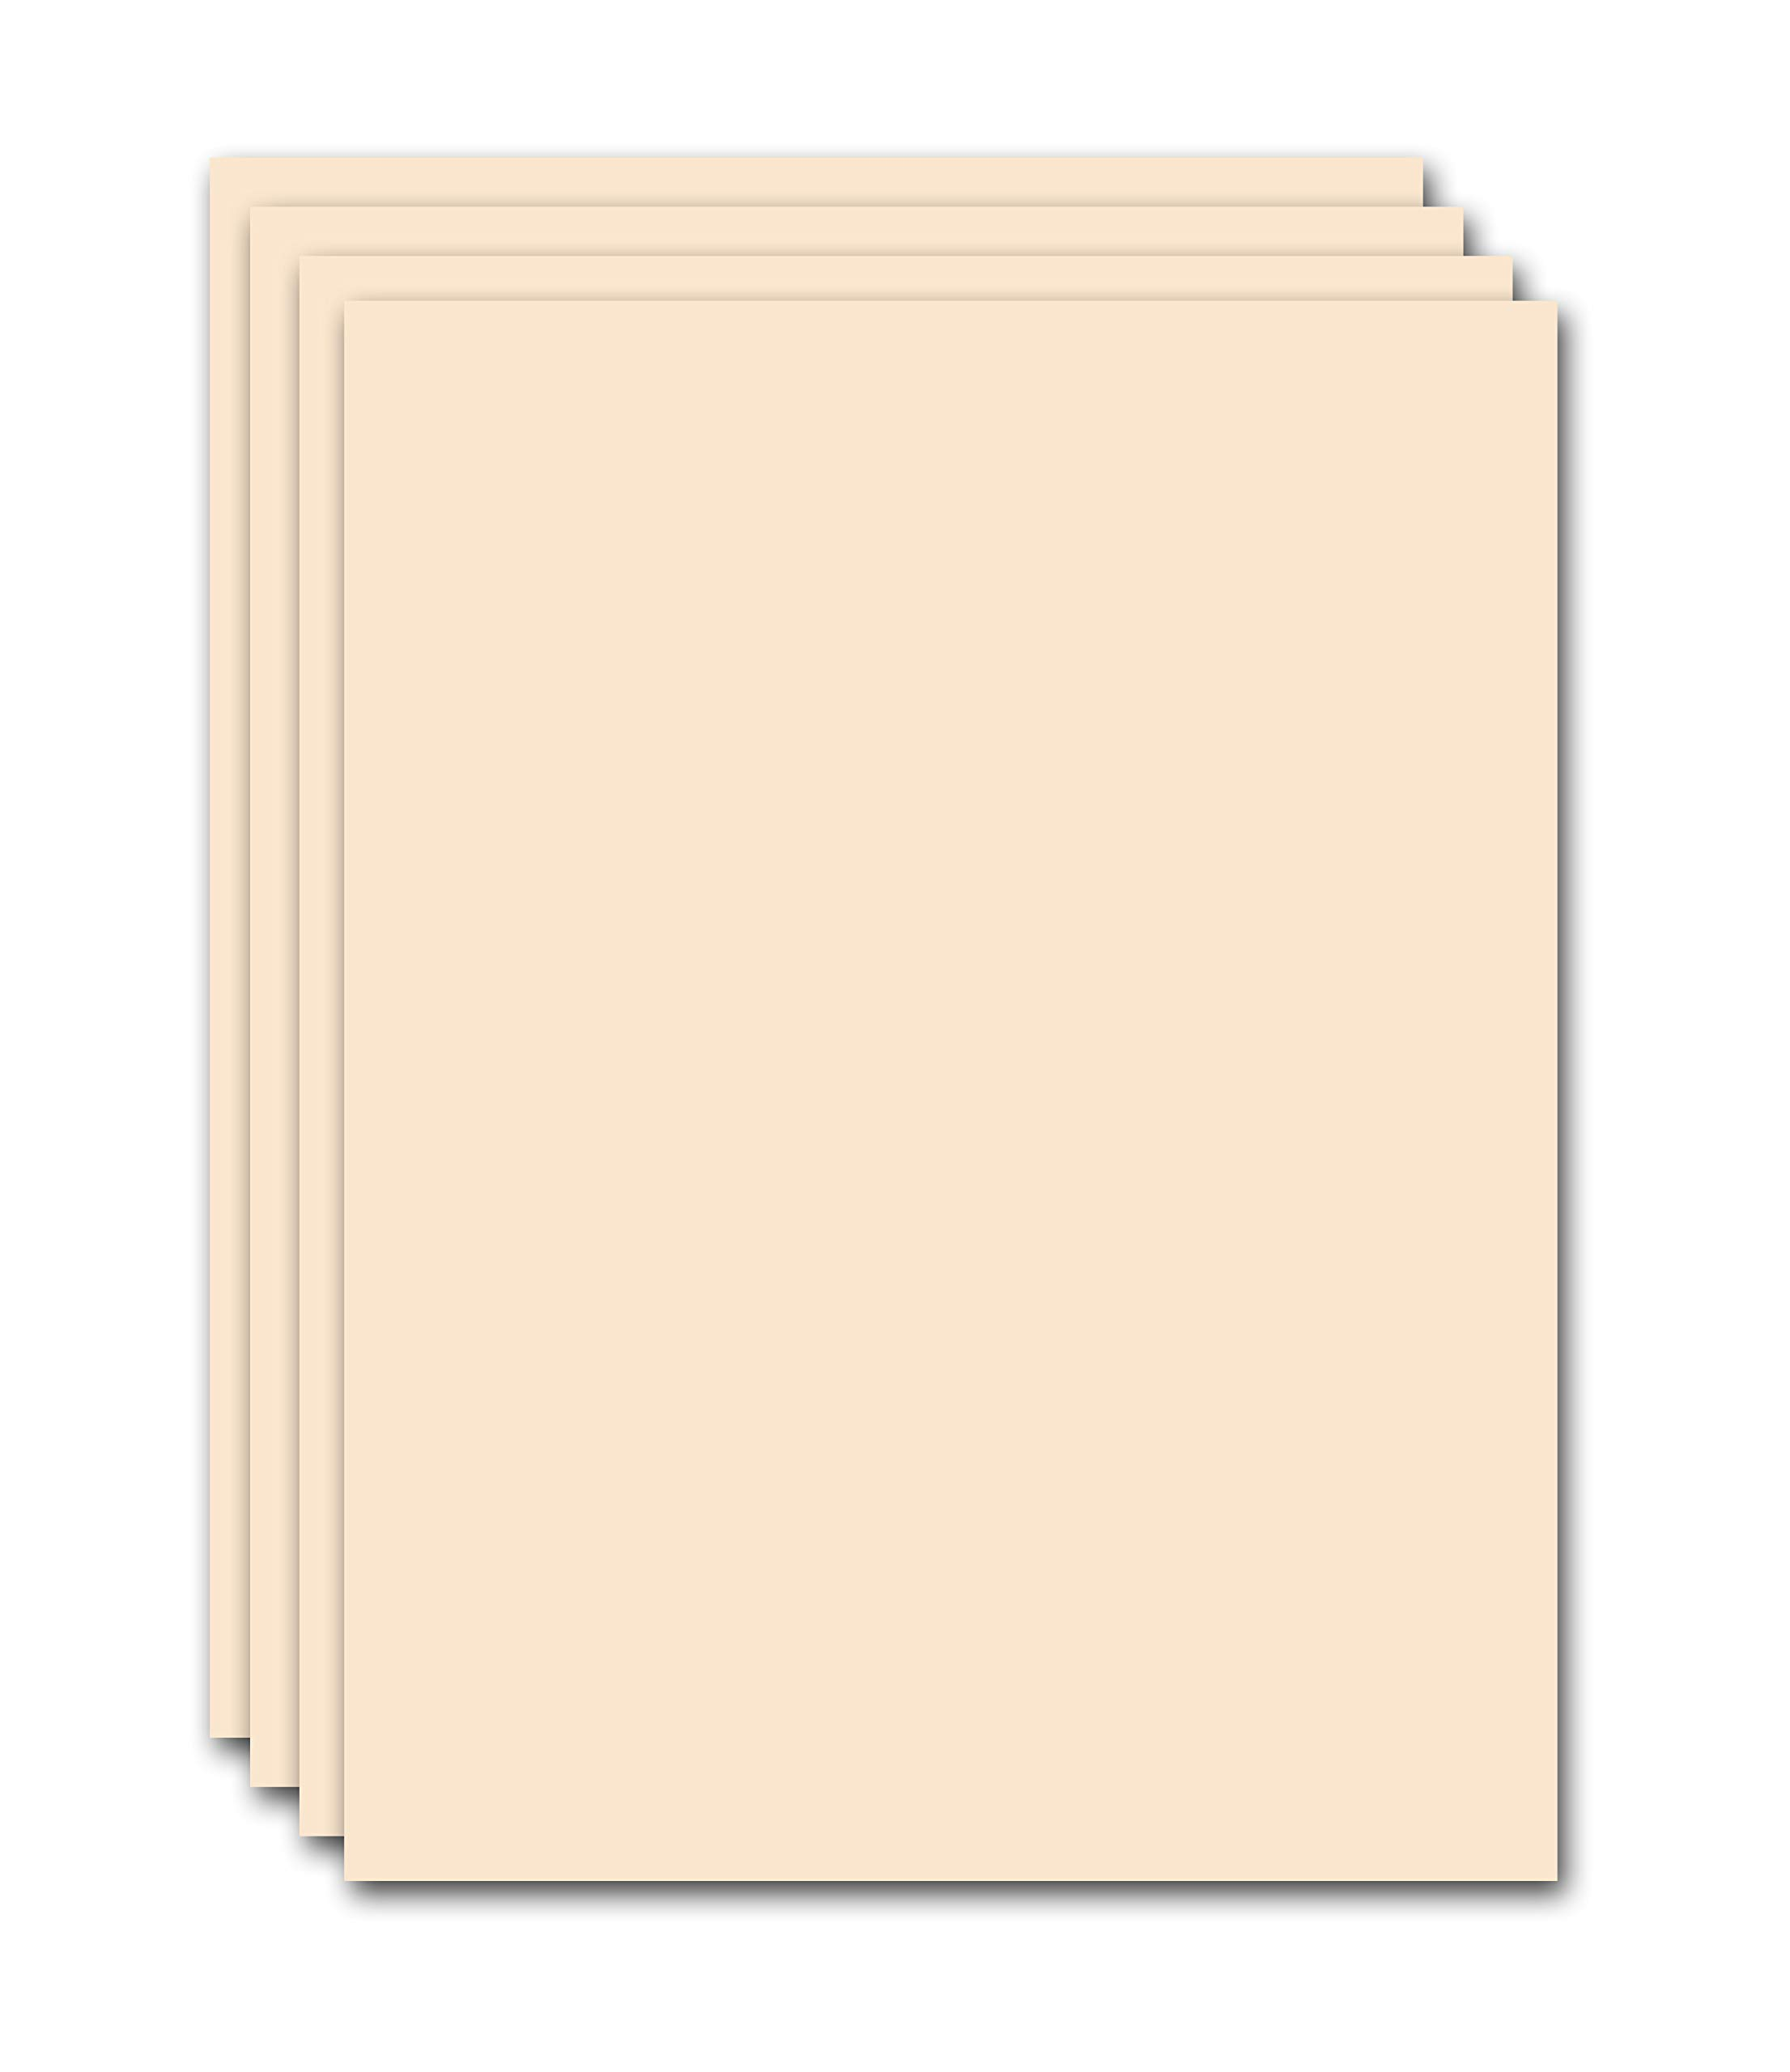 Premium Natural Card Stock Double Thick Heavyweight Paper - 130# Cover (350 gsm) - 8.5'' x 11'' - Pack of 200 Sheets - Cover Smooth Finish by Office Crafts and More (Image #1)